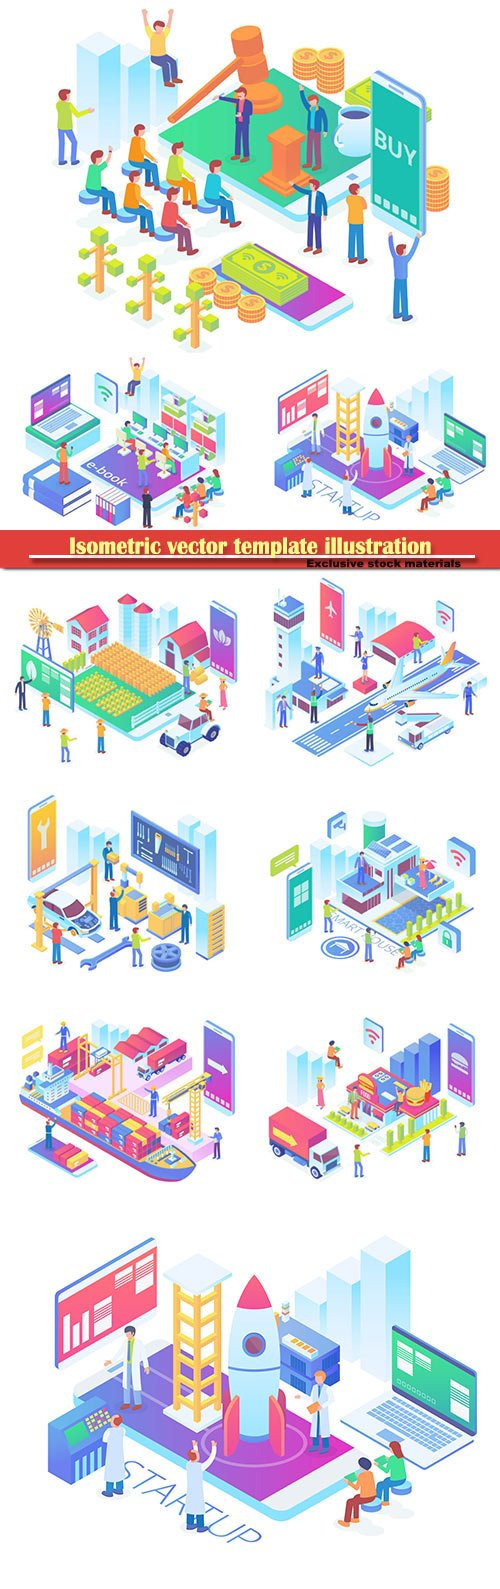 Isometric vector template illustration # 36